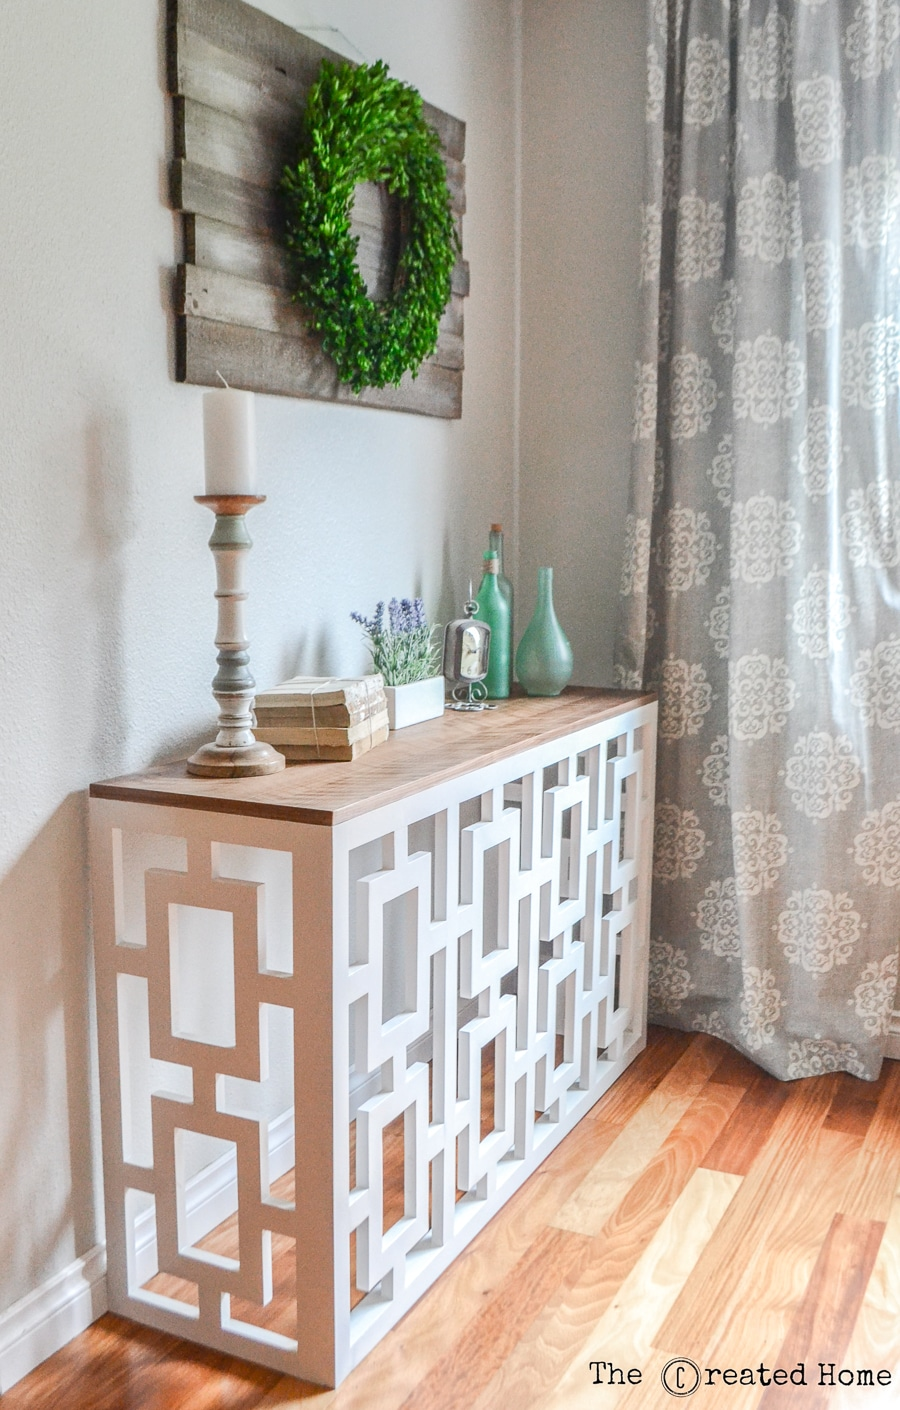 How to build a DIY console table with stunning fretwork design by Jen Woodhouse